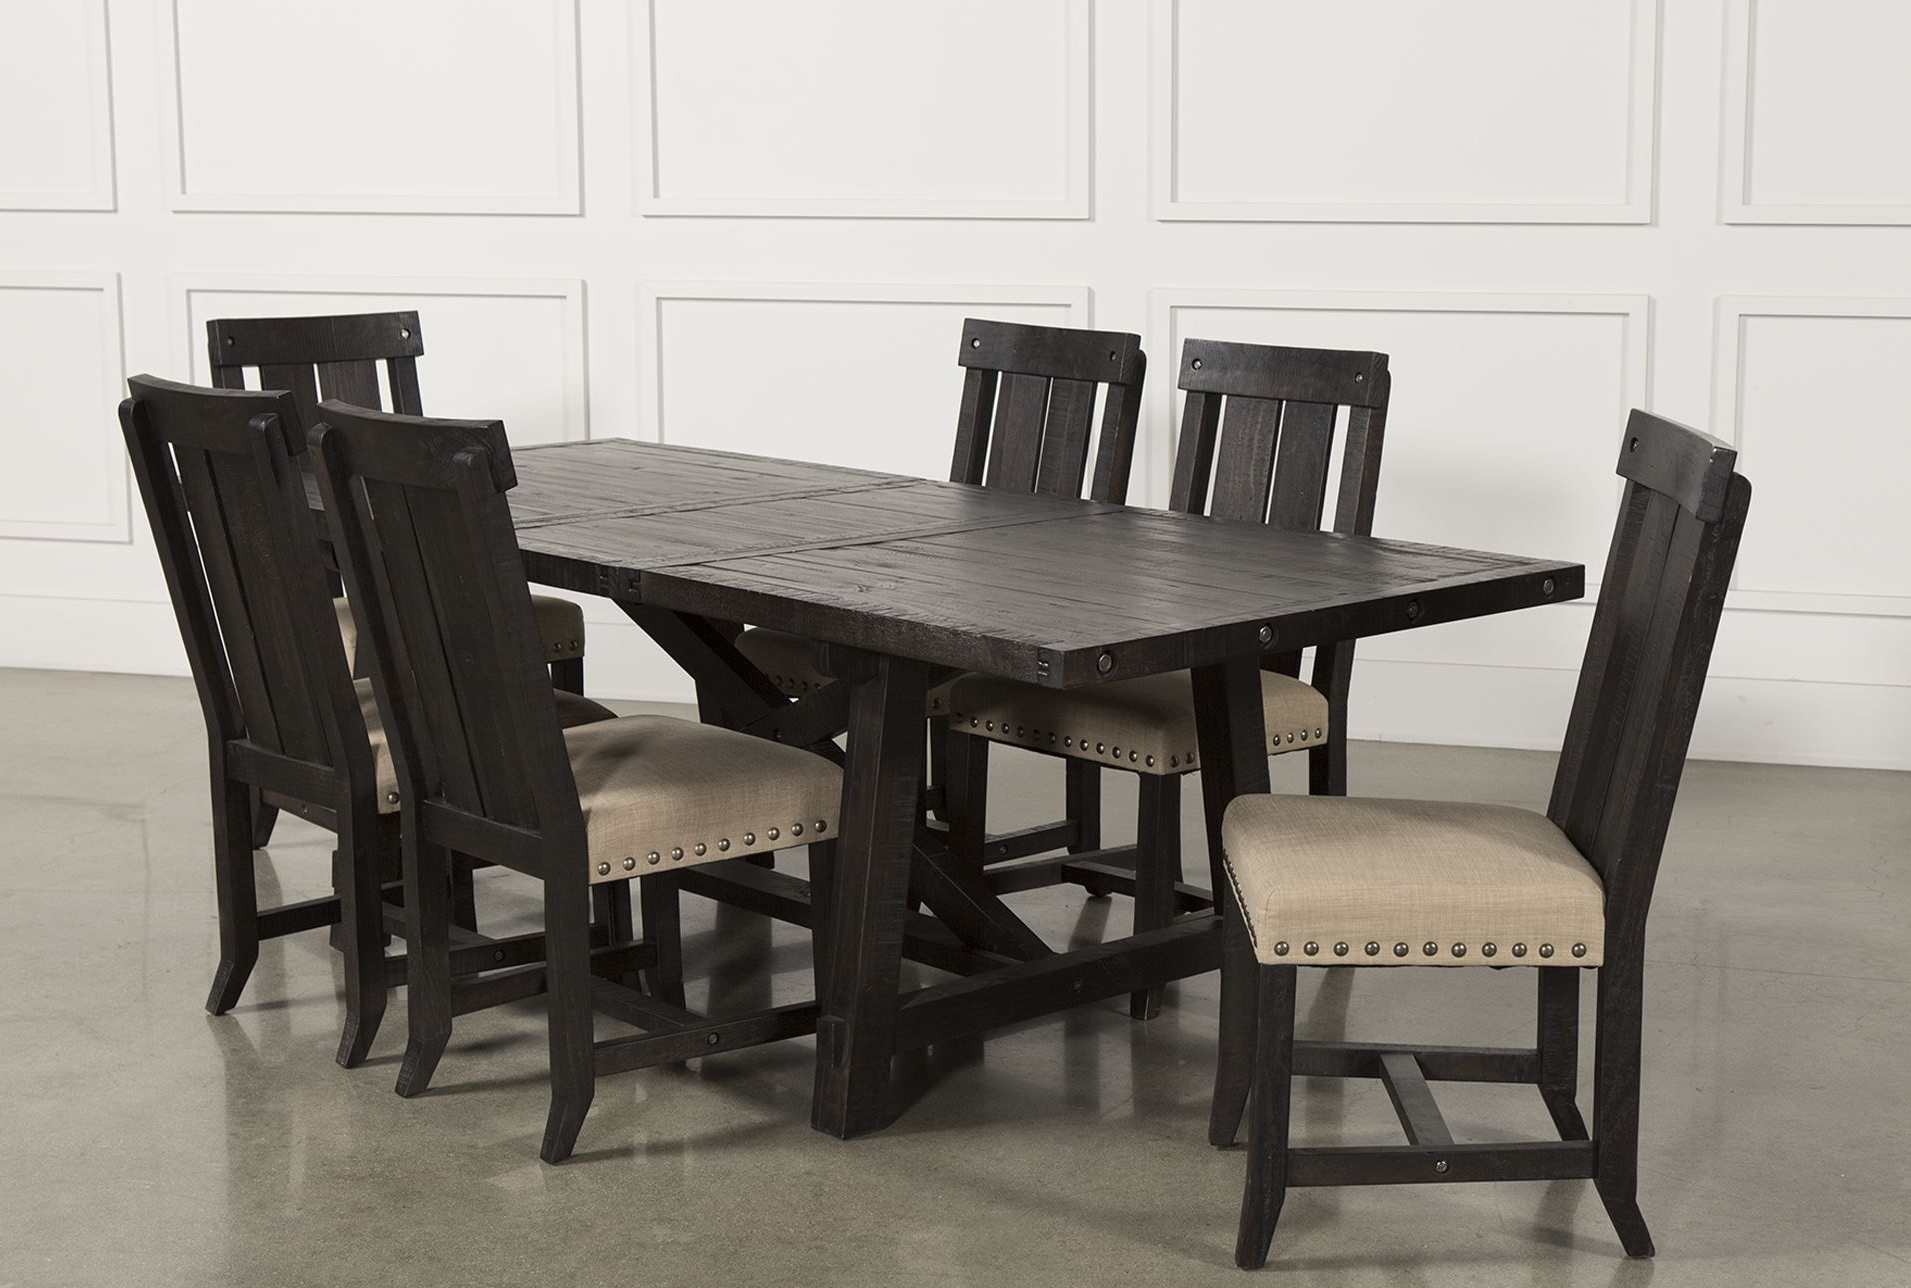 Home, Future Home Regarding Jaxon Grey 5 Piece Round Extension Dining Sets With Wood Chairs (Gallery 4 of 25)